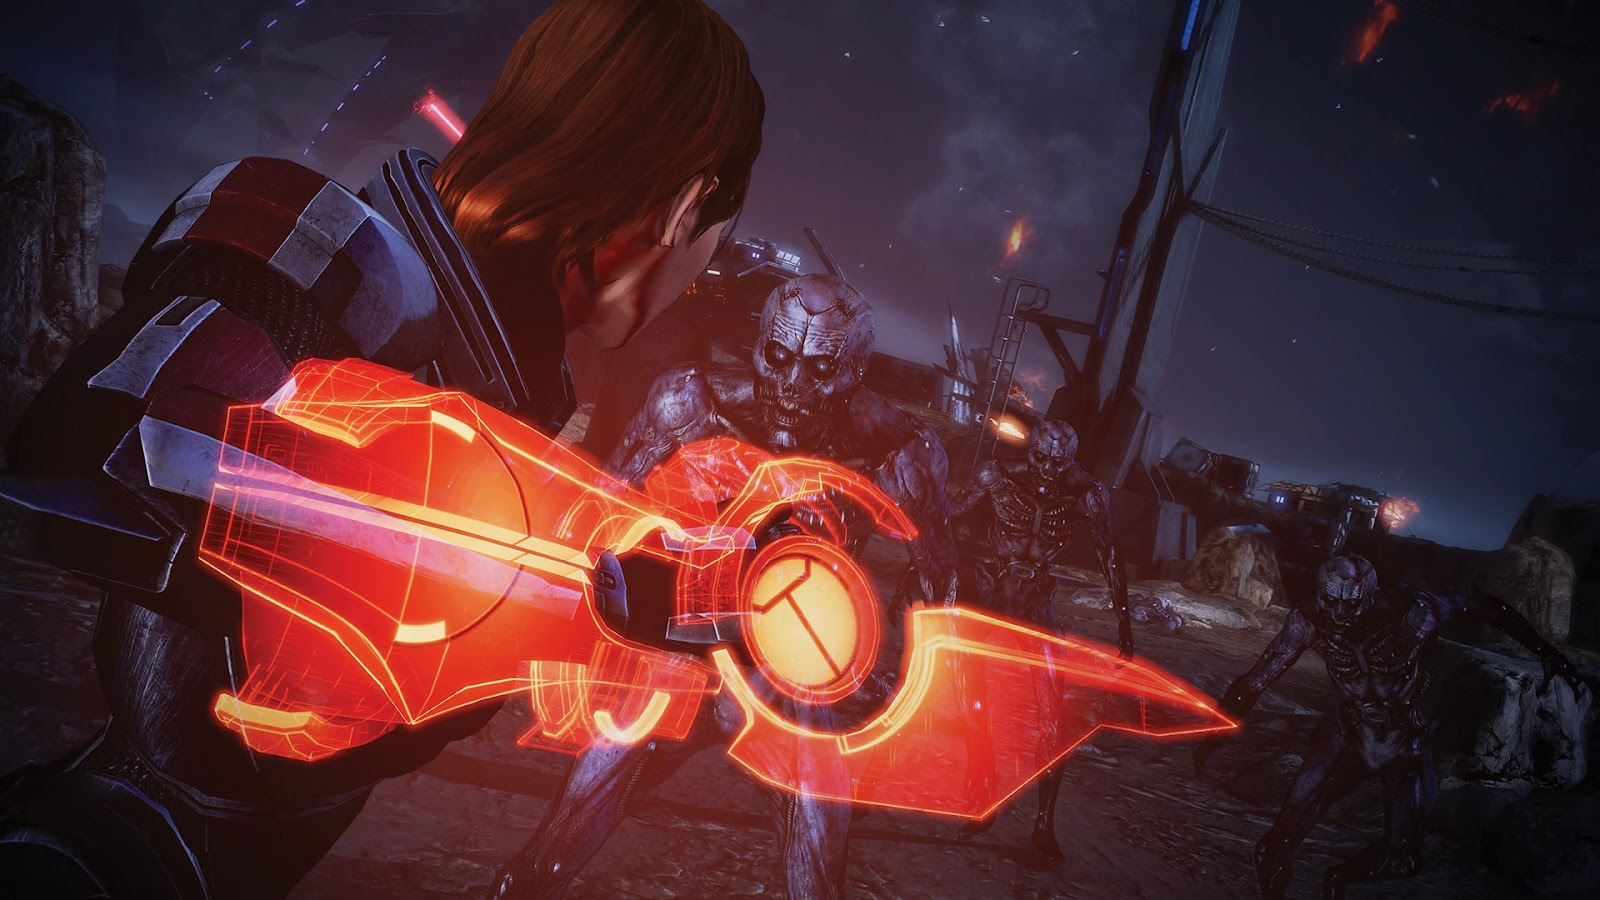 EA May Build Mass Effect 5 On Unreal Rather Than Frostbite